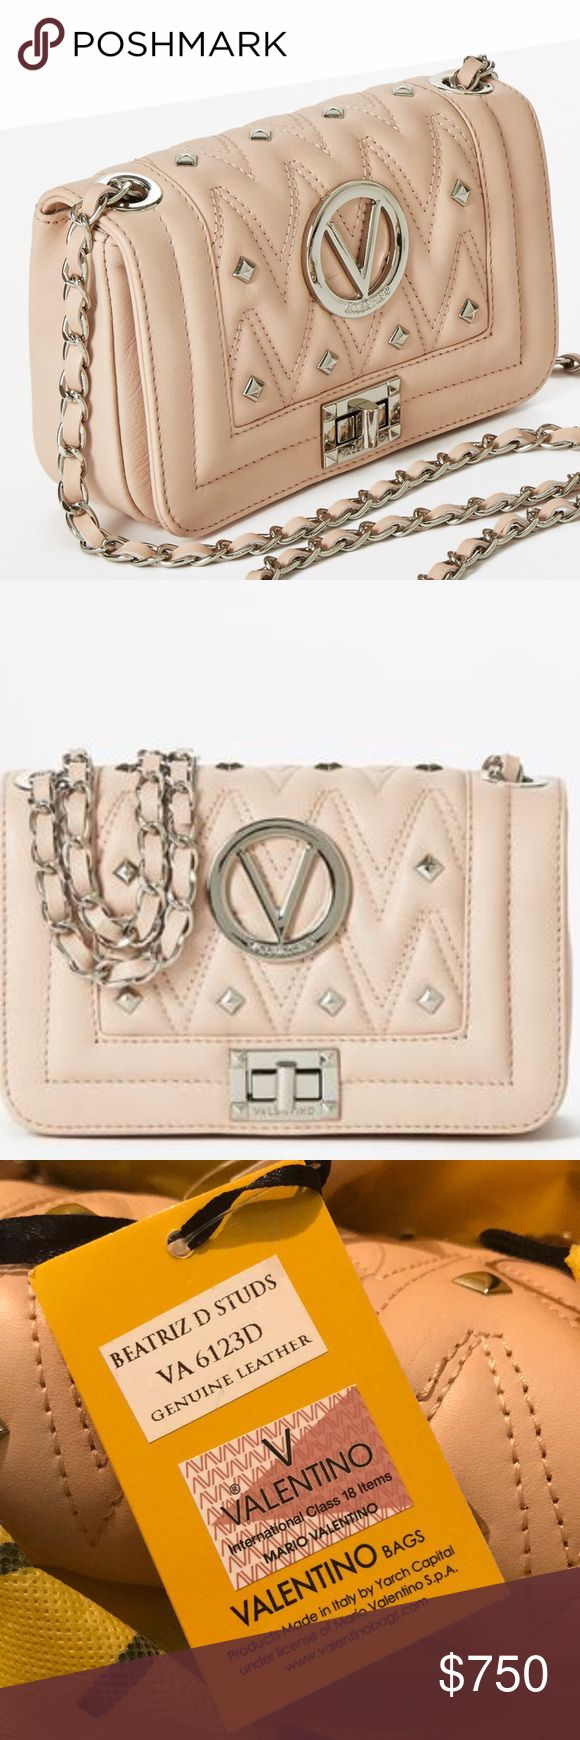 "🌹NWT🌹VALENTINO WEEKEND SALE ONLY ❌ NO OFFERS‼️ 💠NWT💠VALENTINO New Diamond BEATRIZ D Rose🌹Doree. Color: Pink/Silver Hardware. Condition: In NWT Condition, with no visible flaws yay❣️ Features a leather-woven chain shoulder strap.  Center zip compartment One zip pocket, one card pocket 9""W X 5""H X 3""D, 22"" strap drop. Comes with original Dust Bag & Care Card. ❌E-Mails ❌Trades ❌Lowball Offers Please‼️ Feel free to ask me any questions, that I may have missed in description. 😊 VALENTINO…"